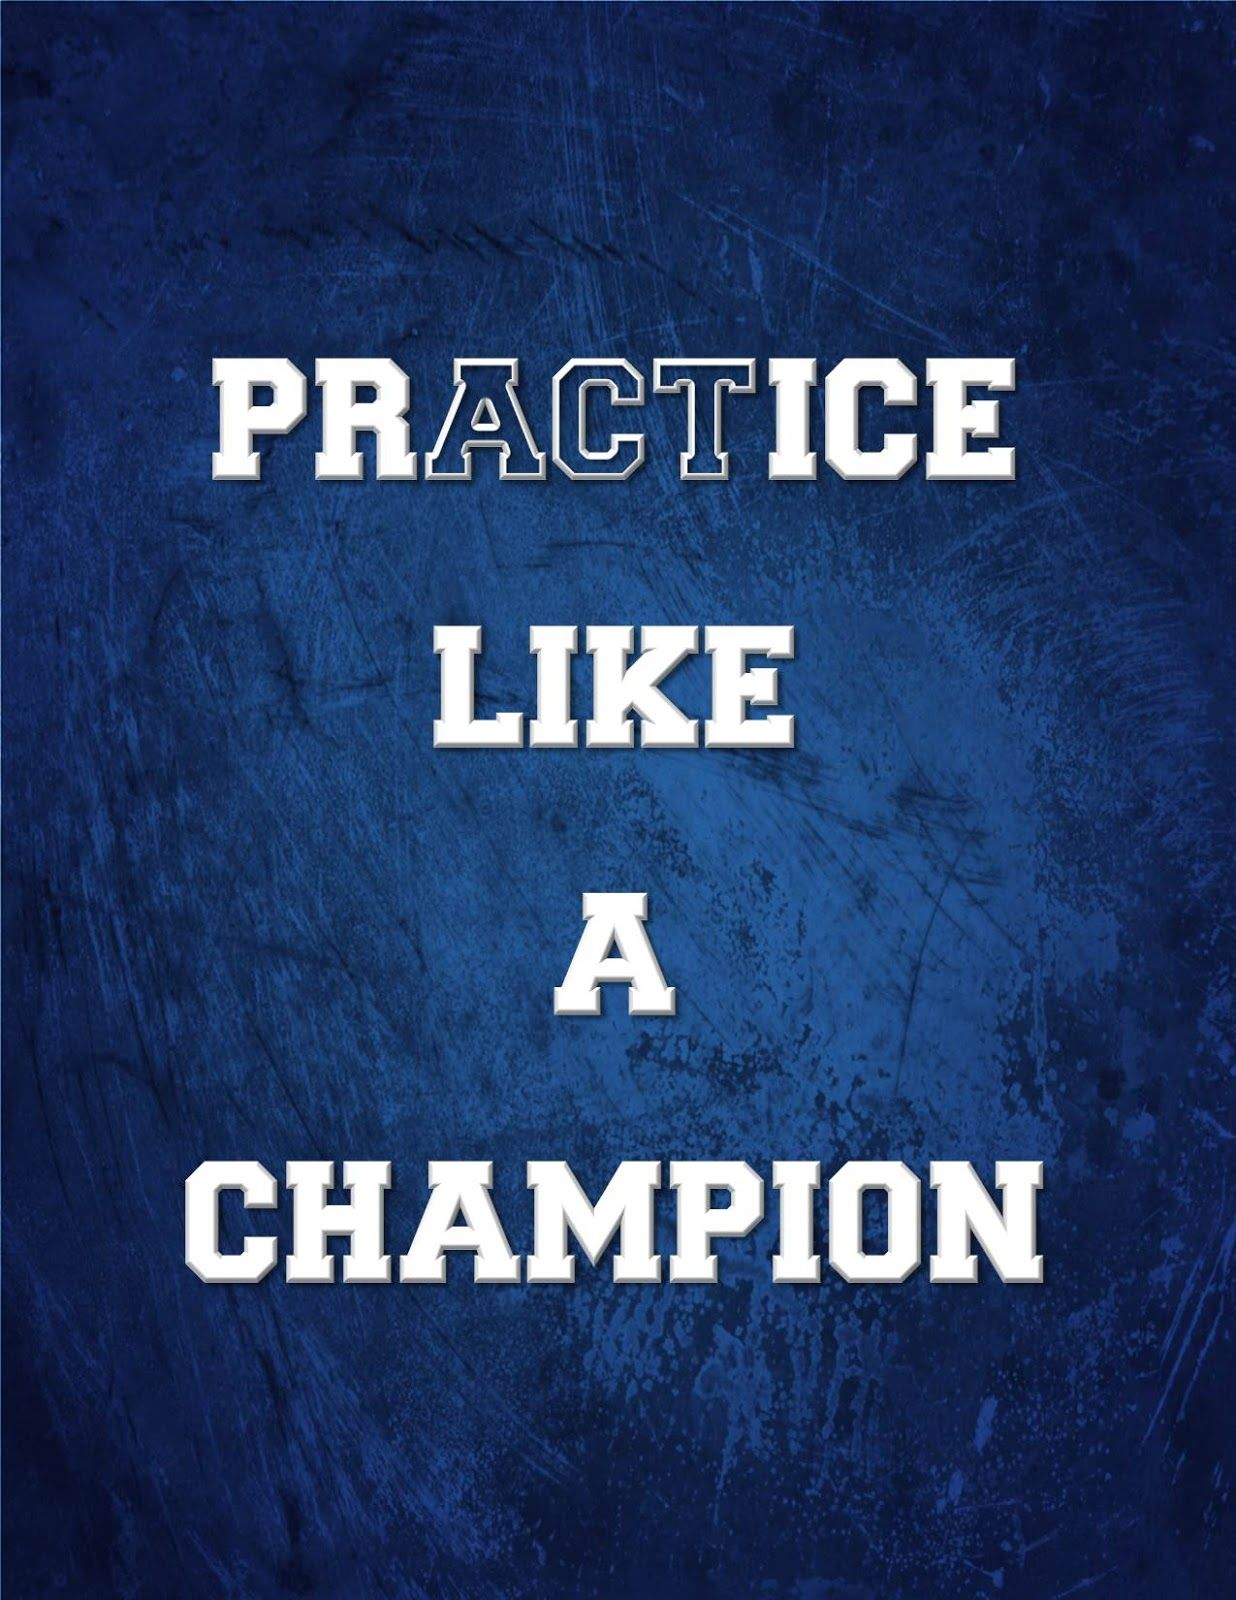 """Lacrosse Quotes Champion Quotes  Practice Like A Champion"""" Act Like A Champion"""